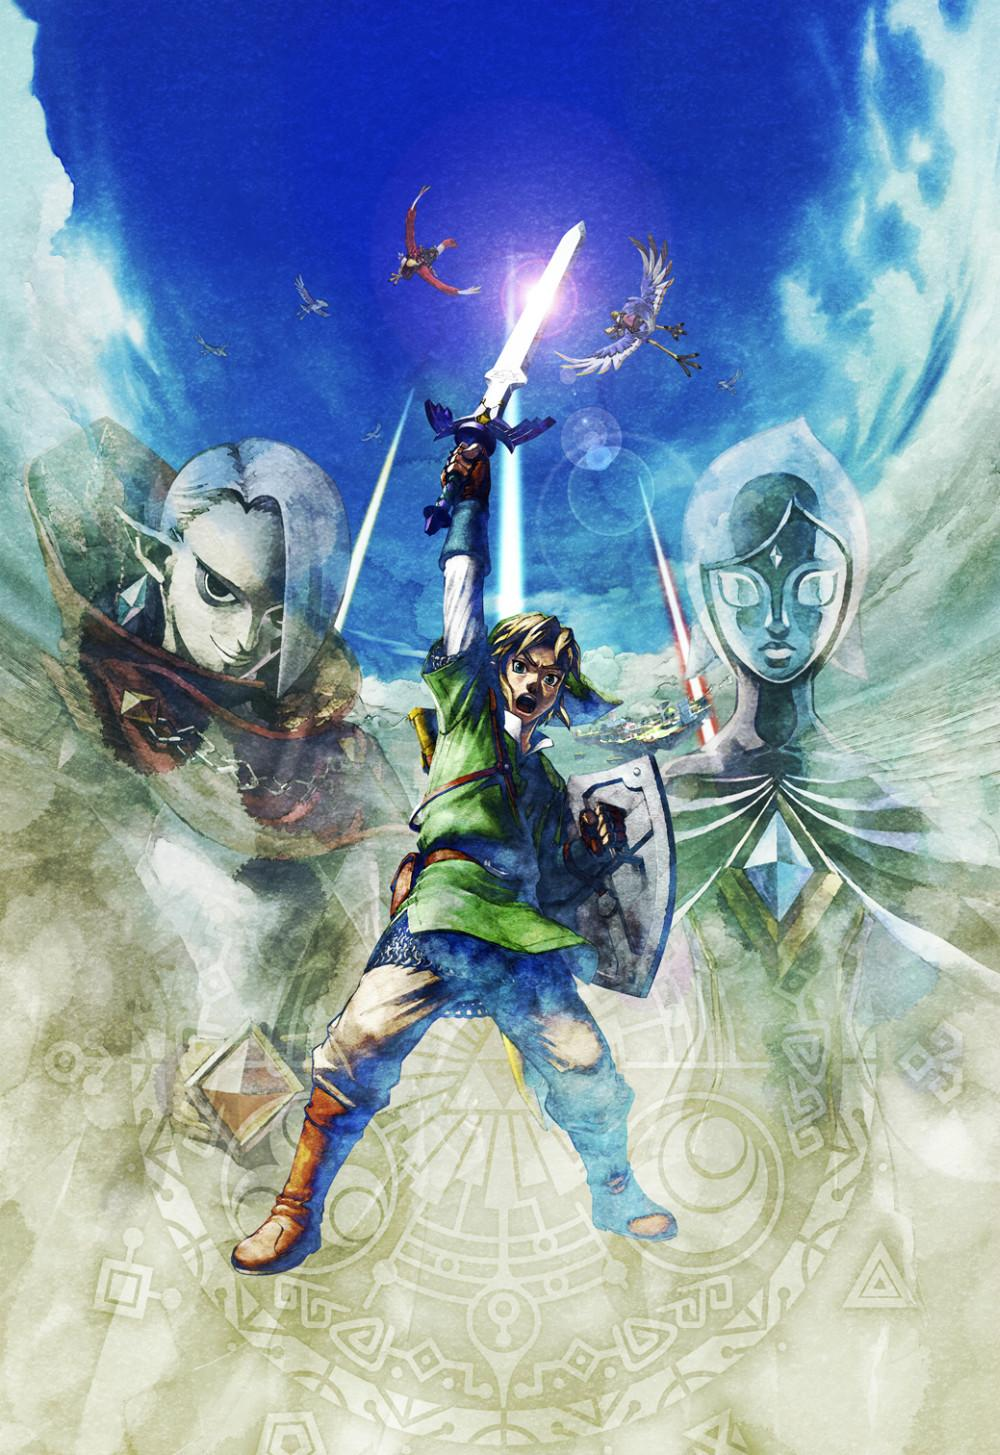 The Legend Of Zelda 25th Anniversary Game Watercolor Inkjet Fabric Poster 32 X 24 17 13 Decor 06 In Painting Calligraphy From Home